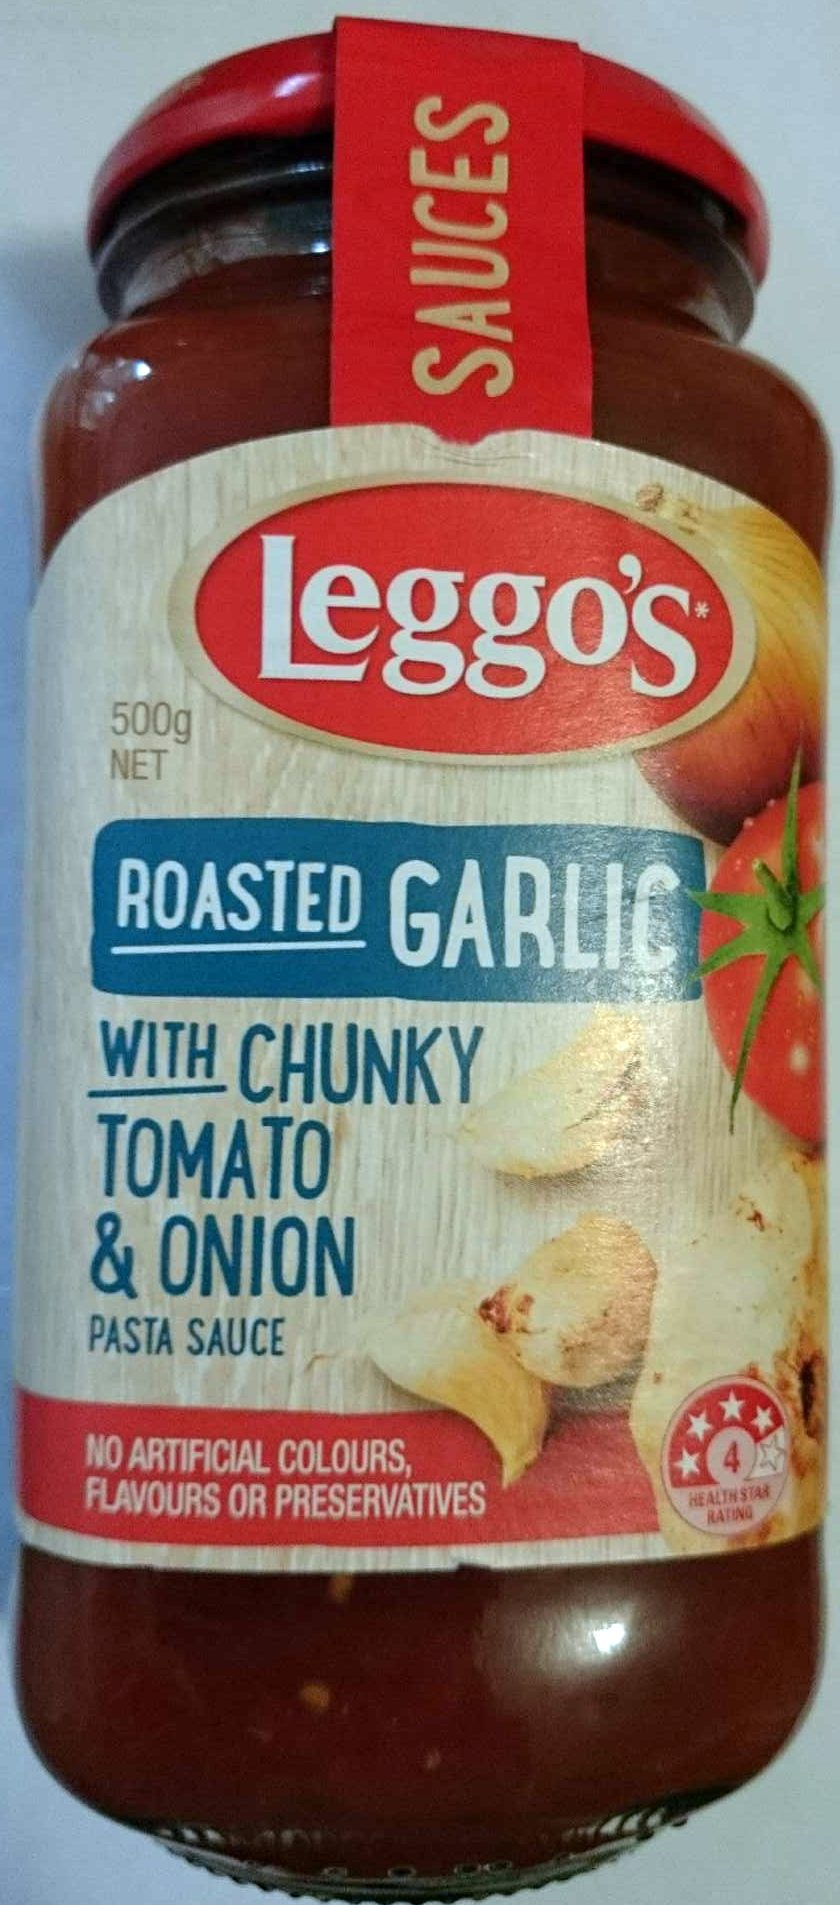 Roasted Garlic with Chunky Tomato & Onion - Product